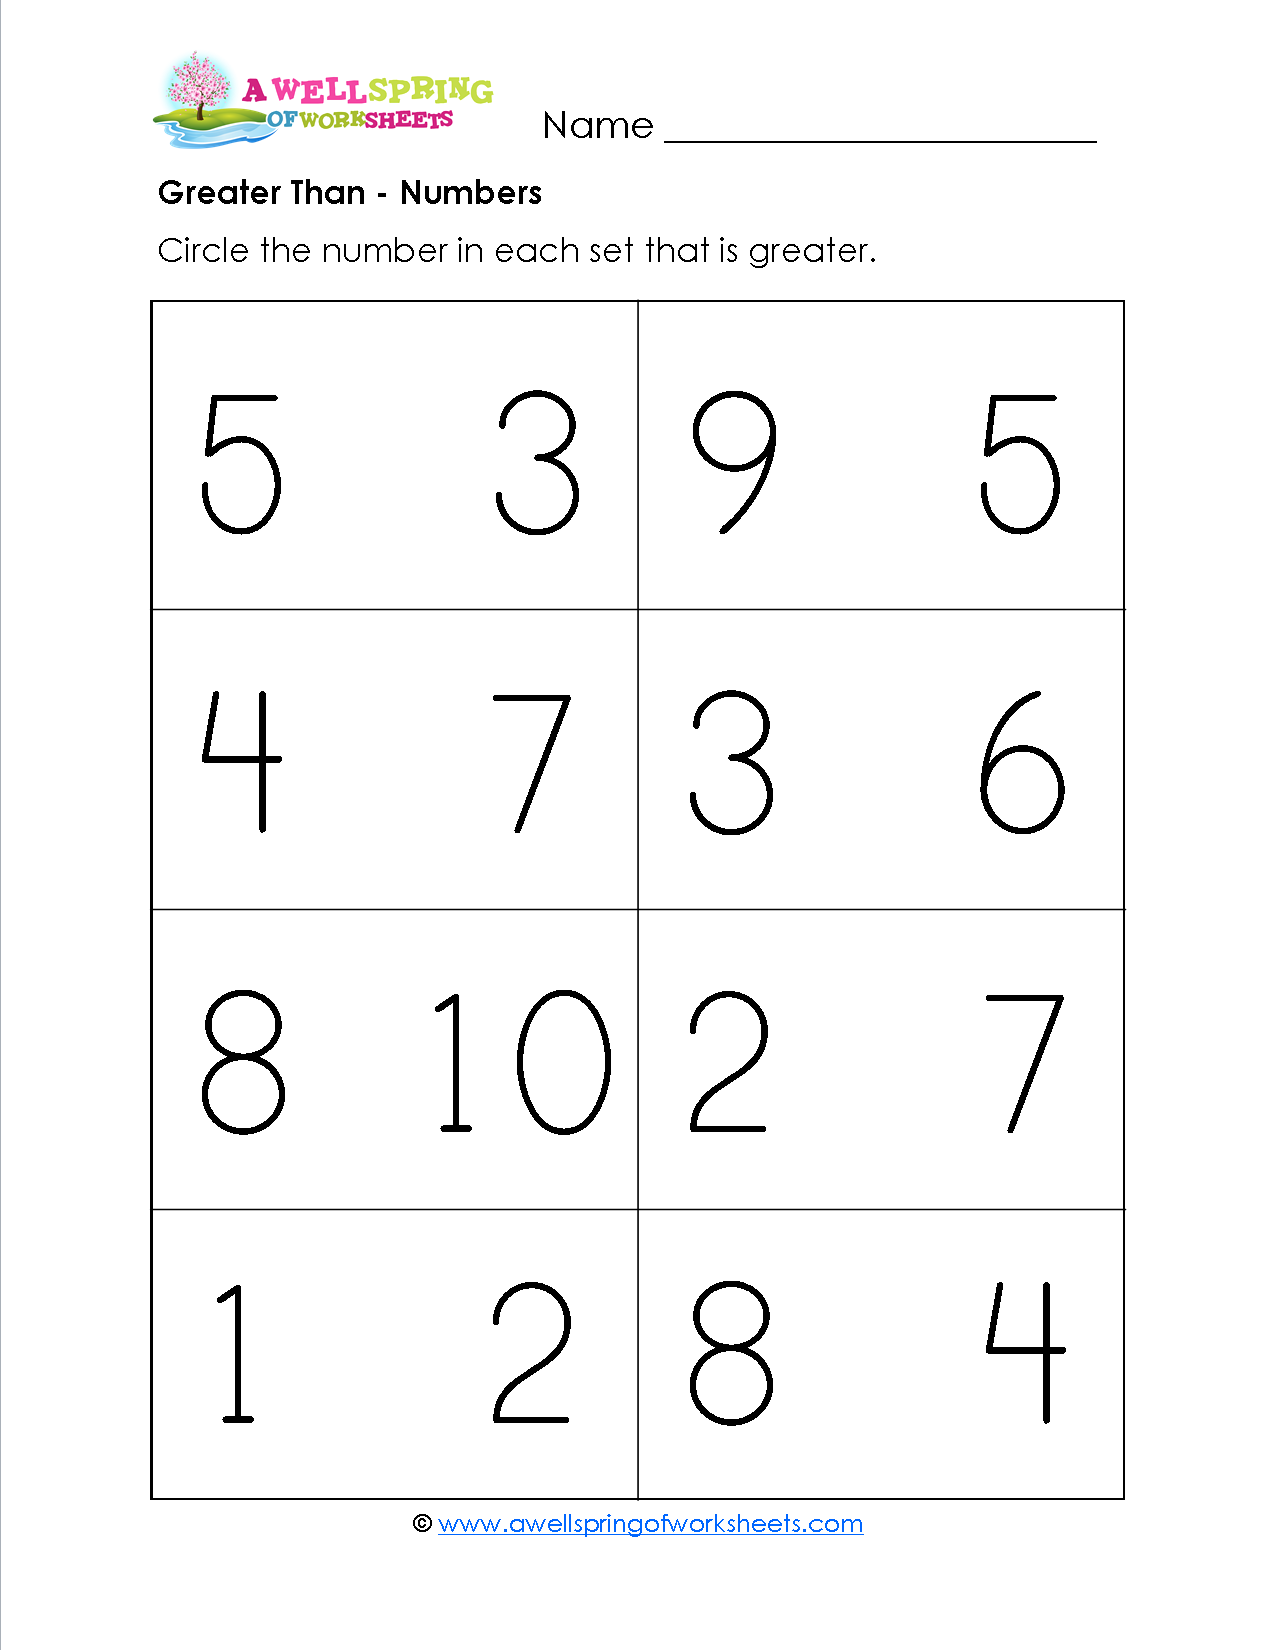 worksheet Worksheets For Greater Than And Less Than grade level worksheets math and kindergarten a wellspring of worksheets